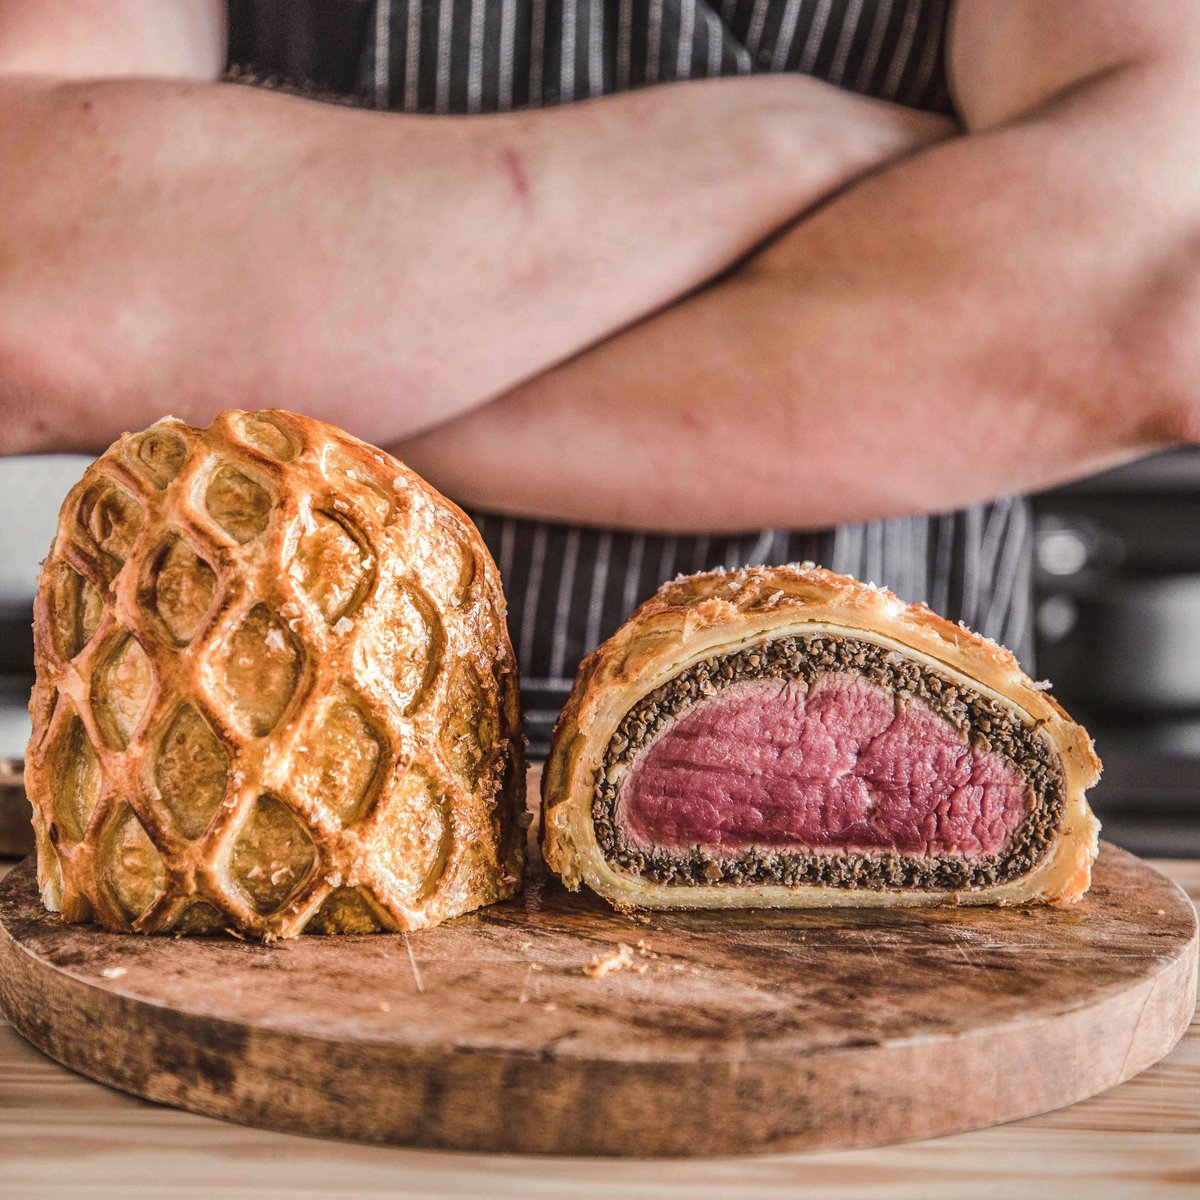 Joshua Weissman On Twitter This One Goes Out To My Boi Gordon Ramsay Beef Wellington Done Https T Co Vwcba3nbnh